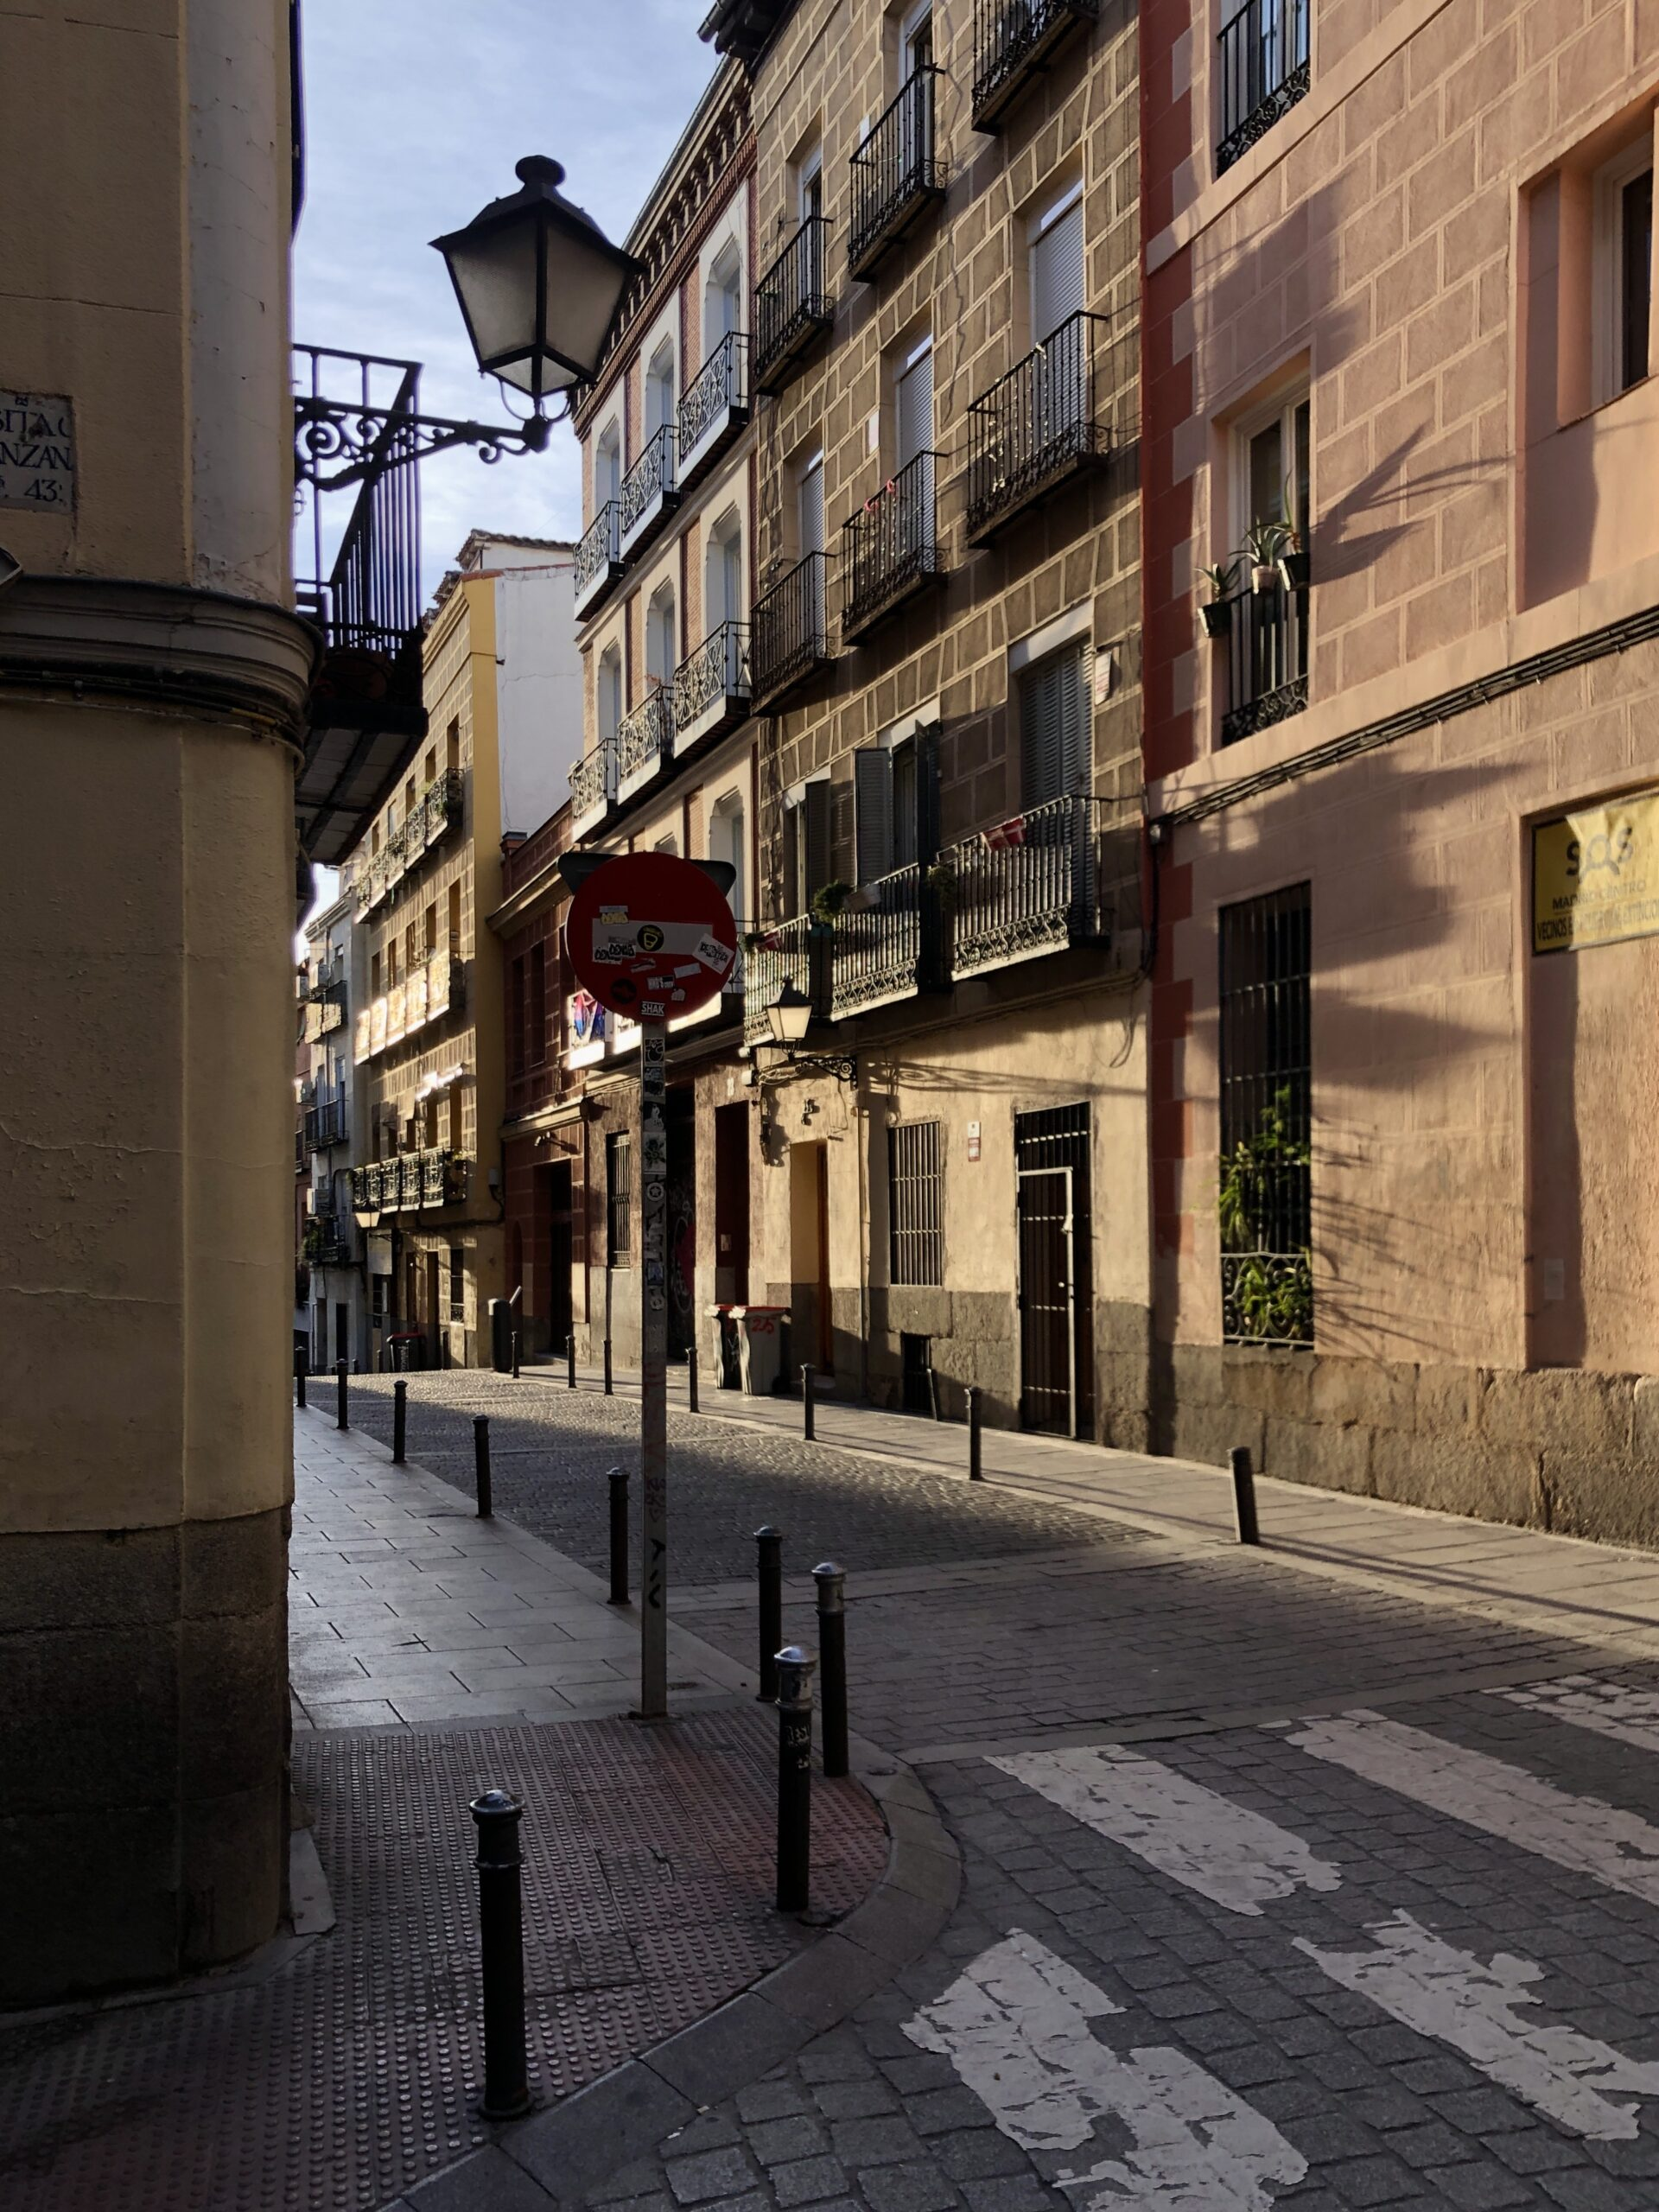 The evening sunlight casts long shadows on the facades of a street in Madrid.